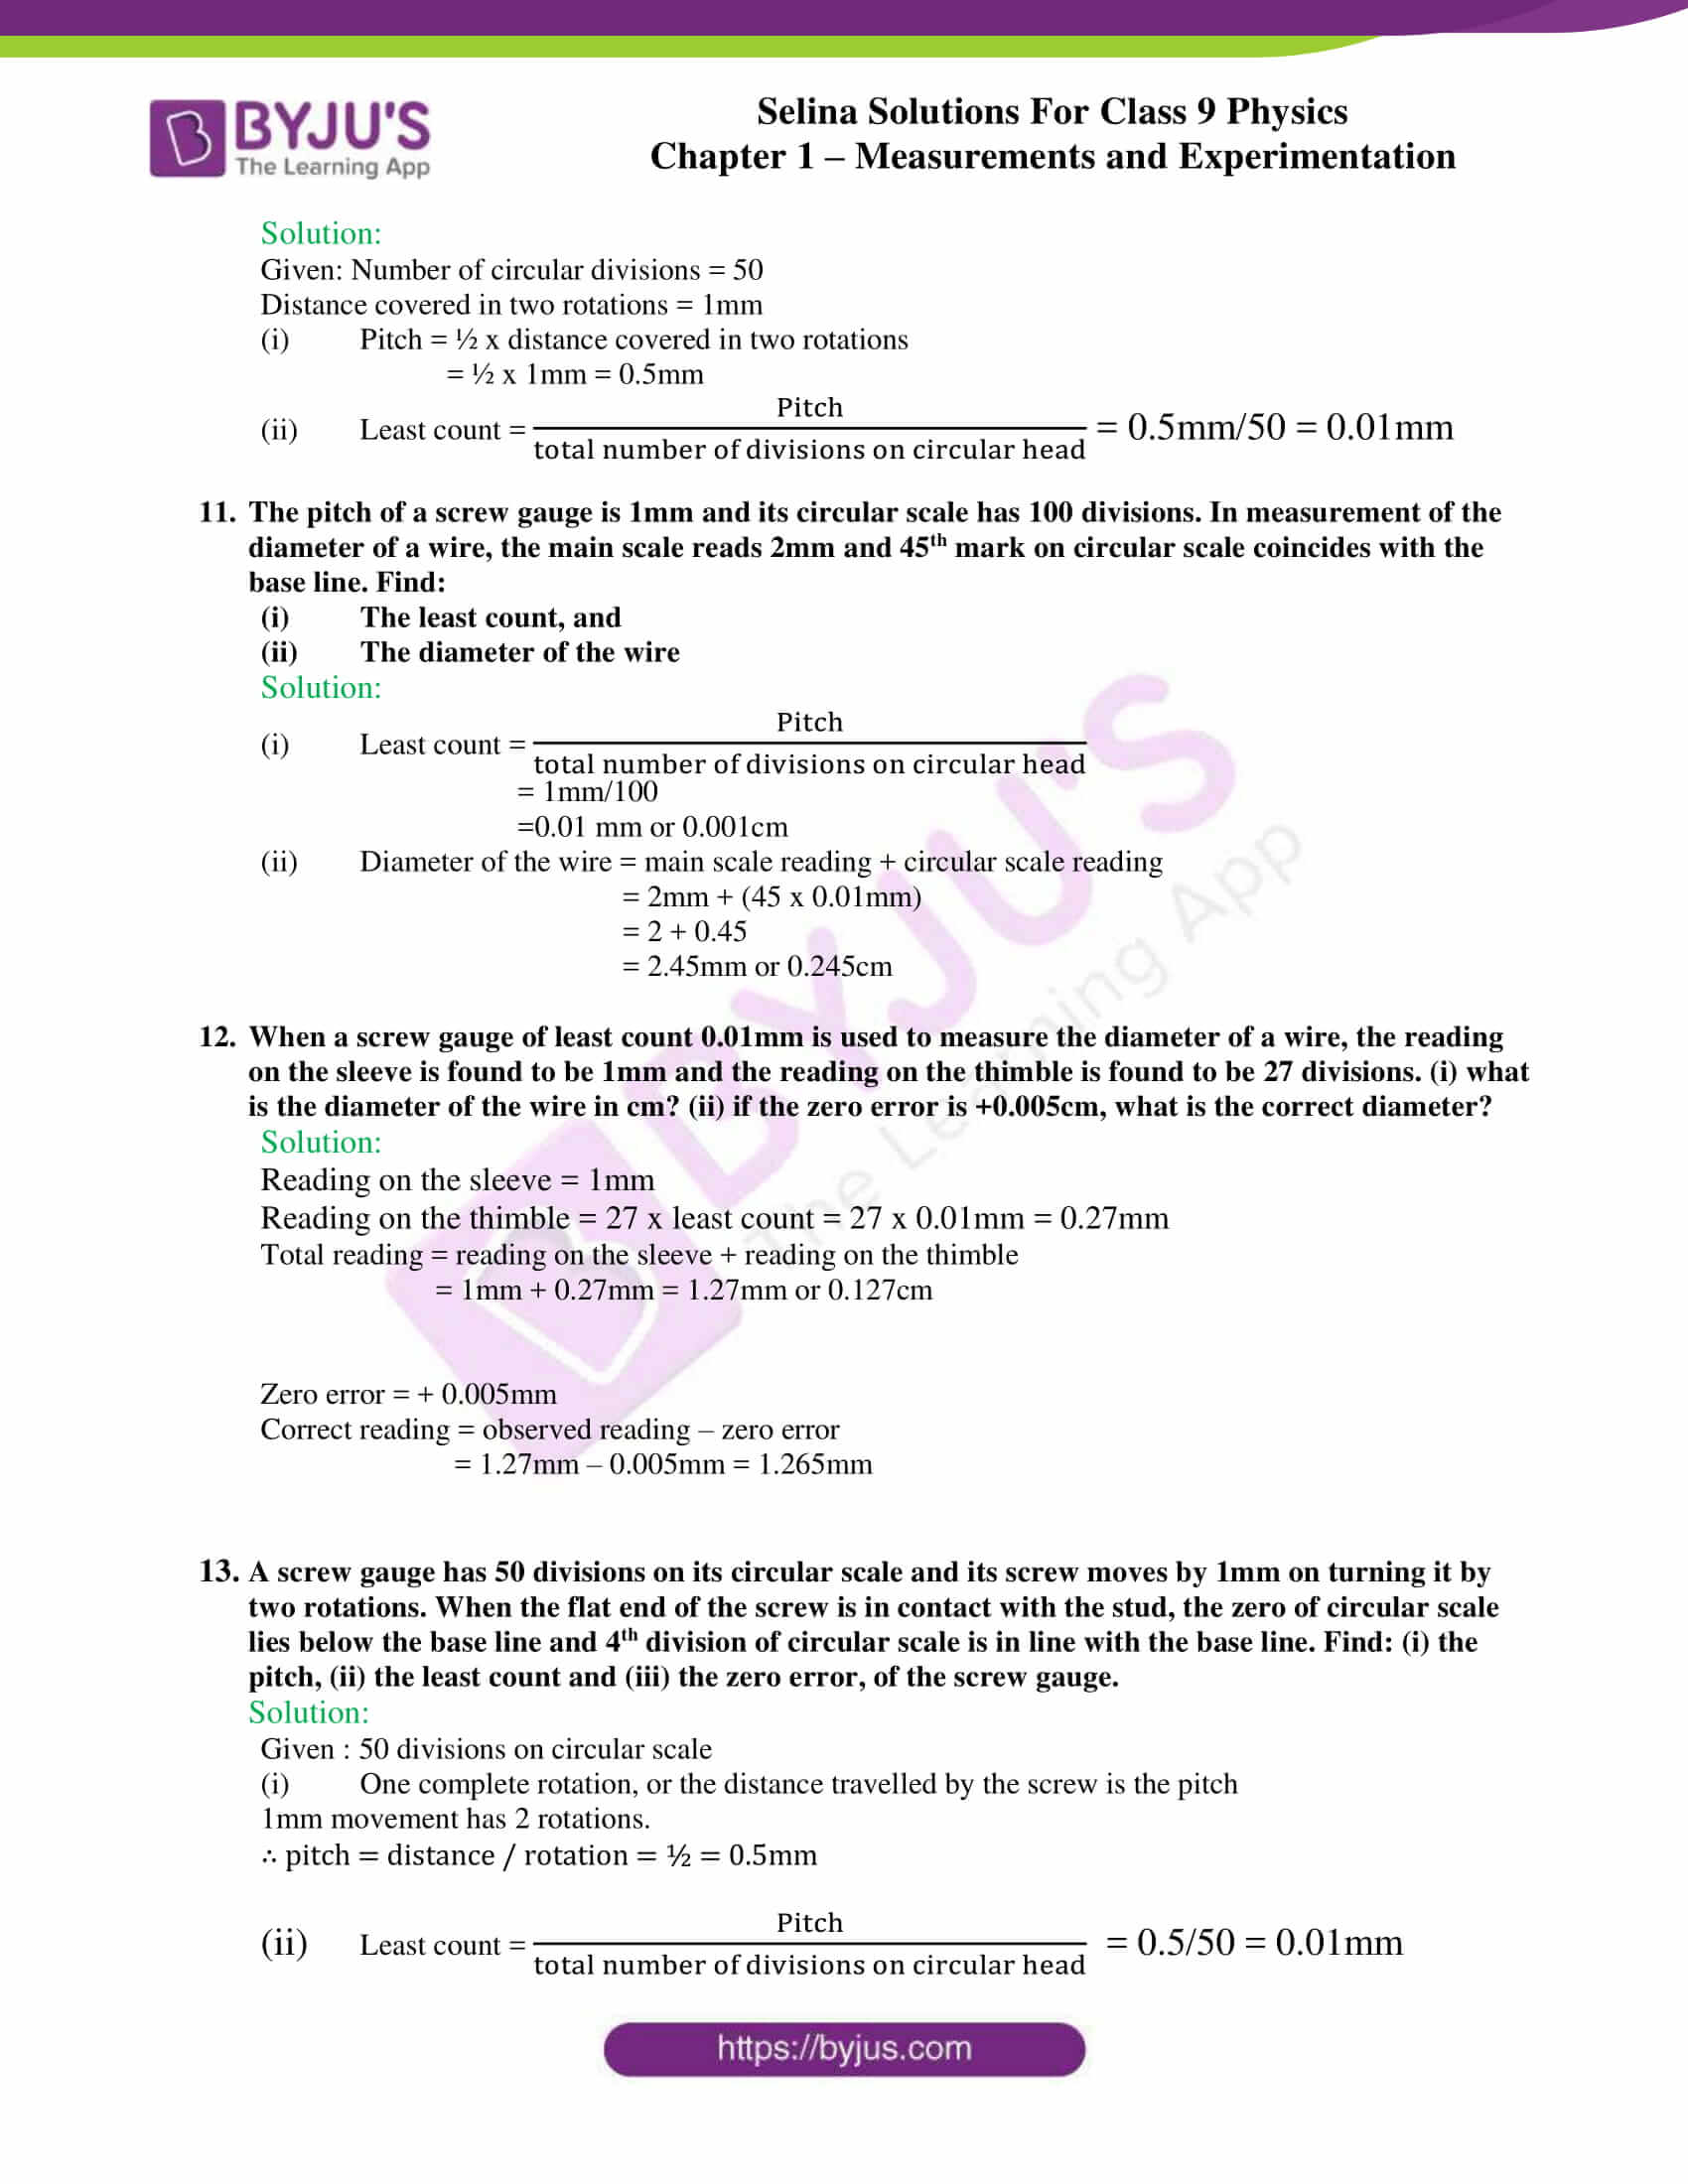 selina solutions class 9 physics chapter 1 Measurements and Experimentation part 23